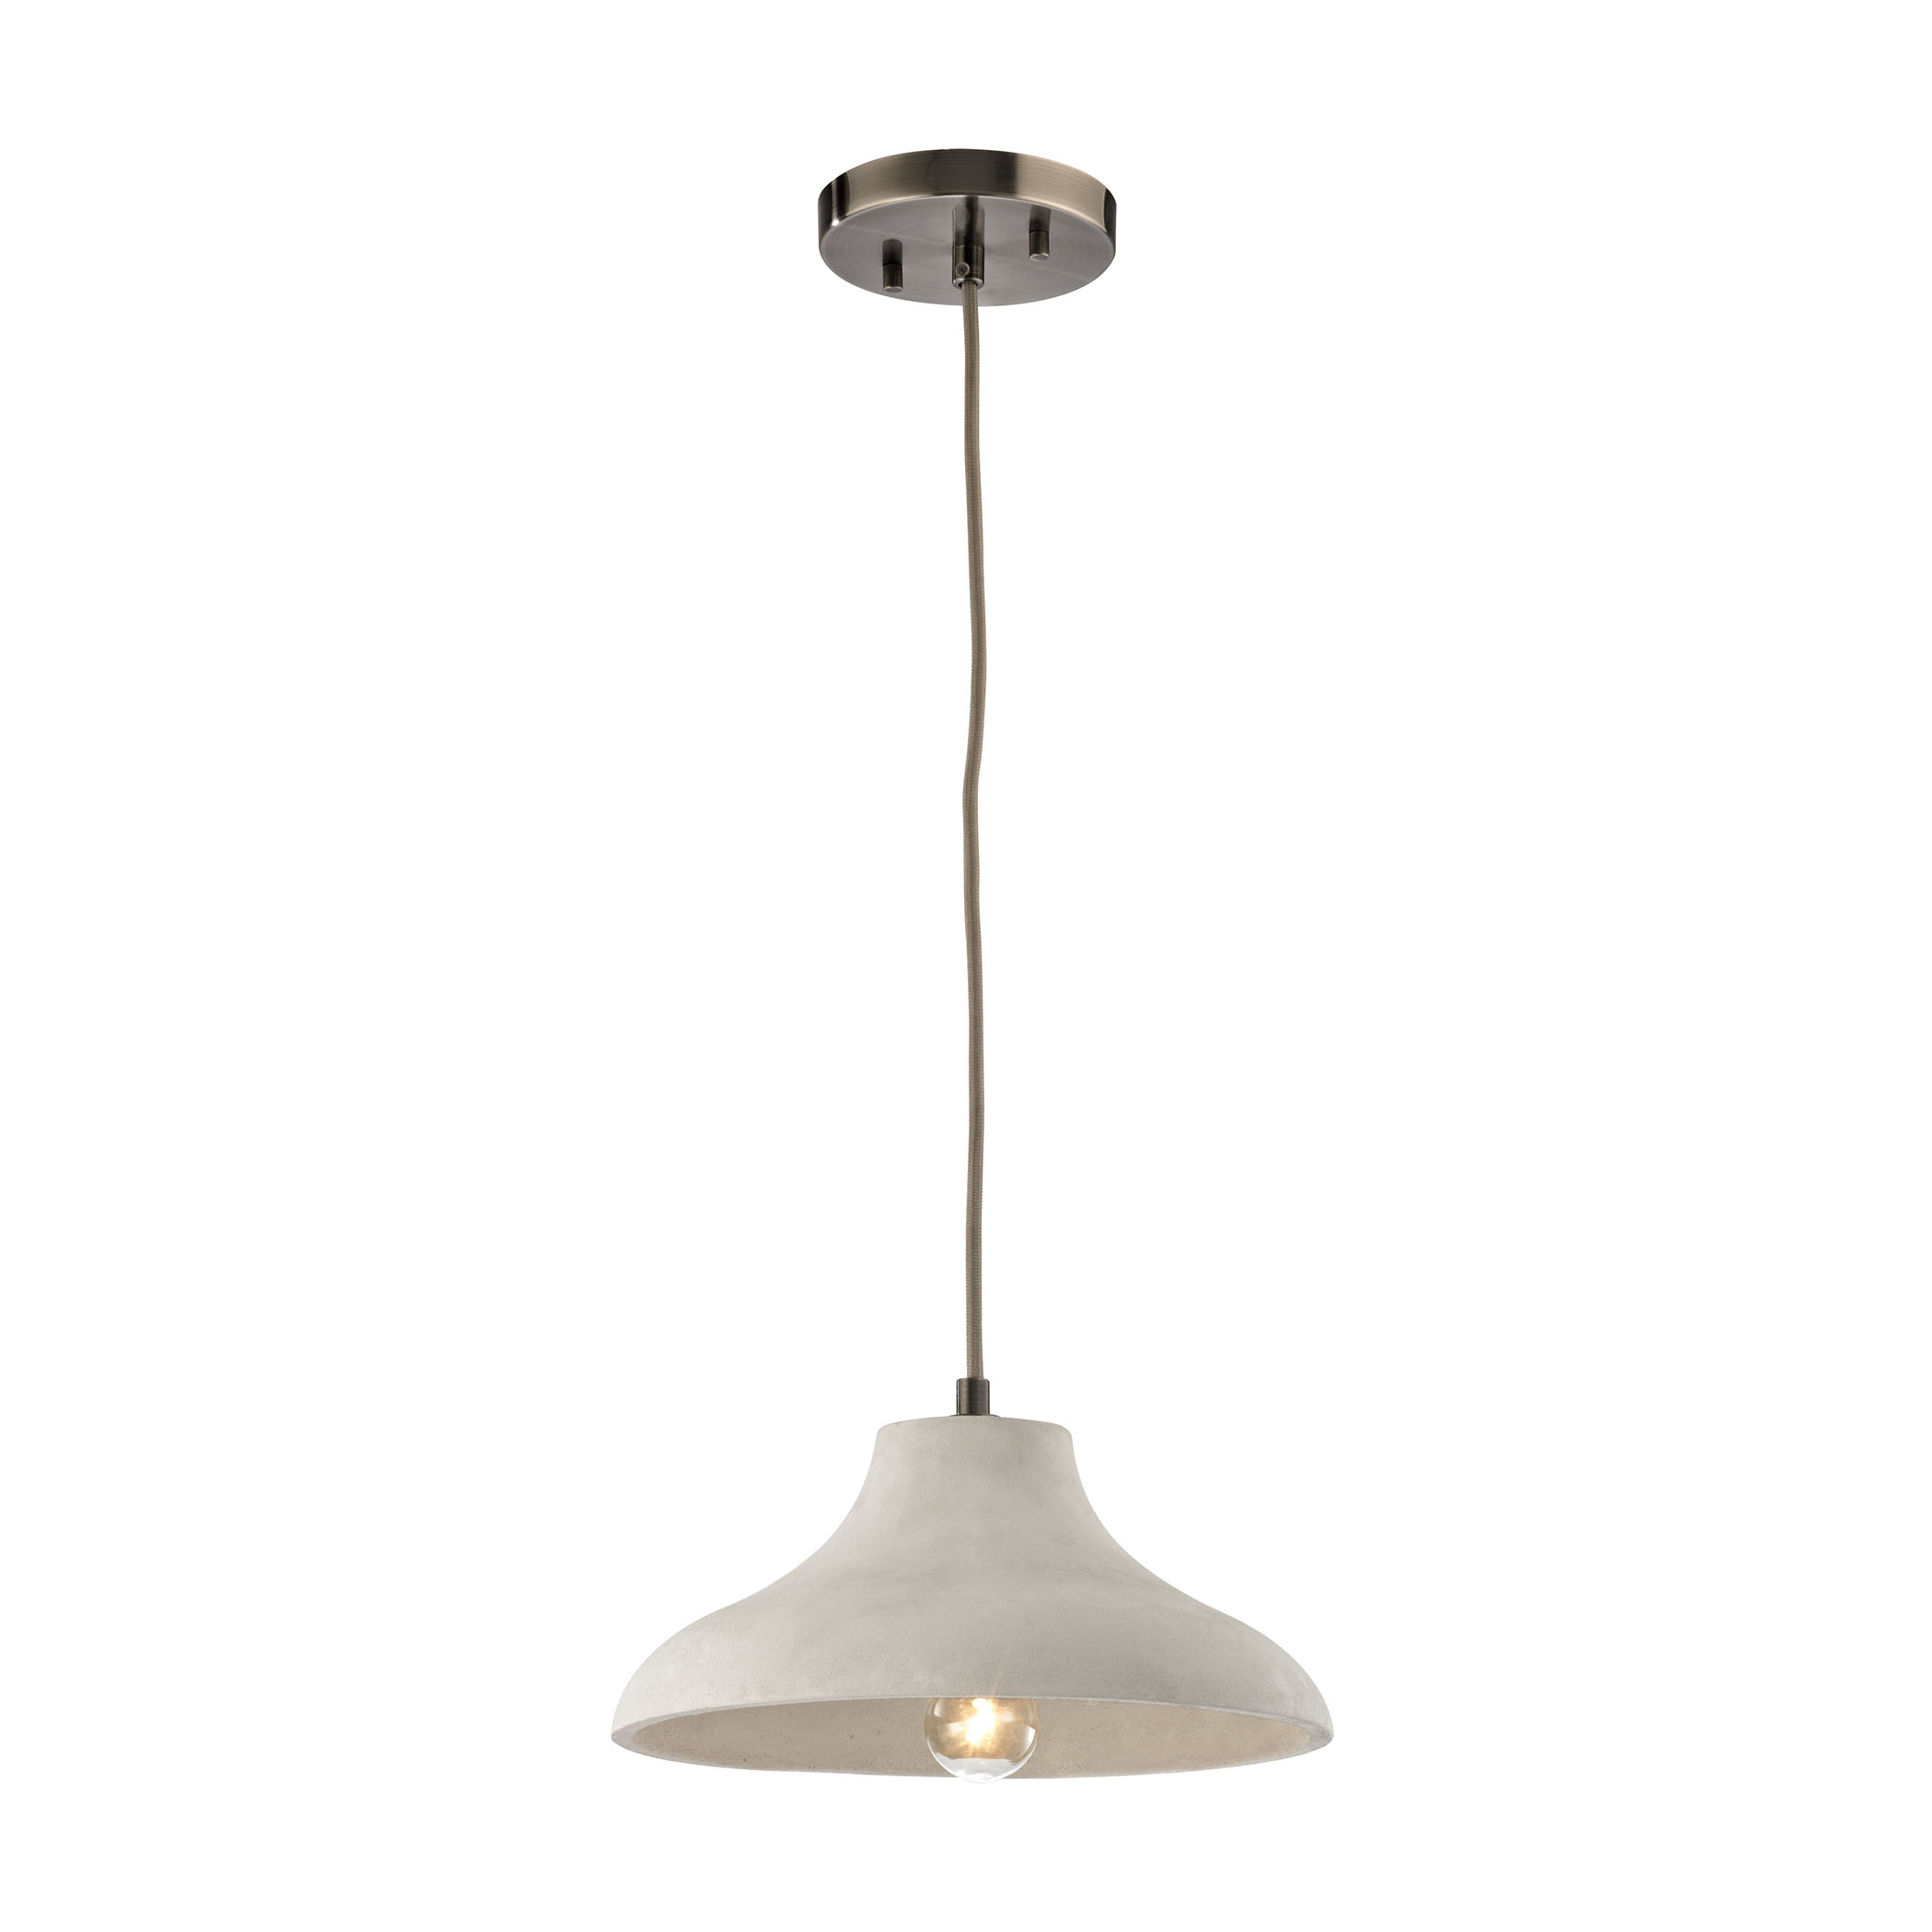 ELK Lighting 45333-1 Urban Form 1 Light Ceiling Pendant